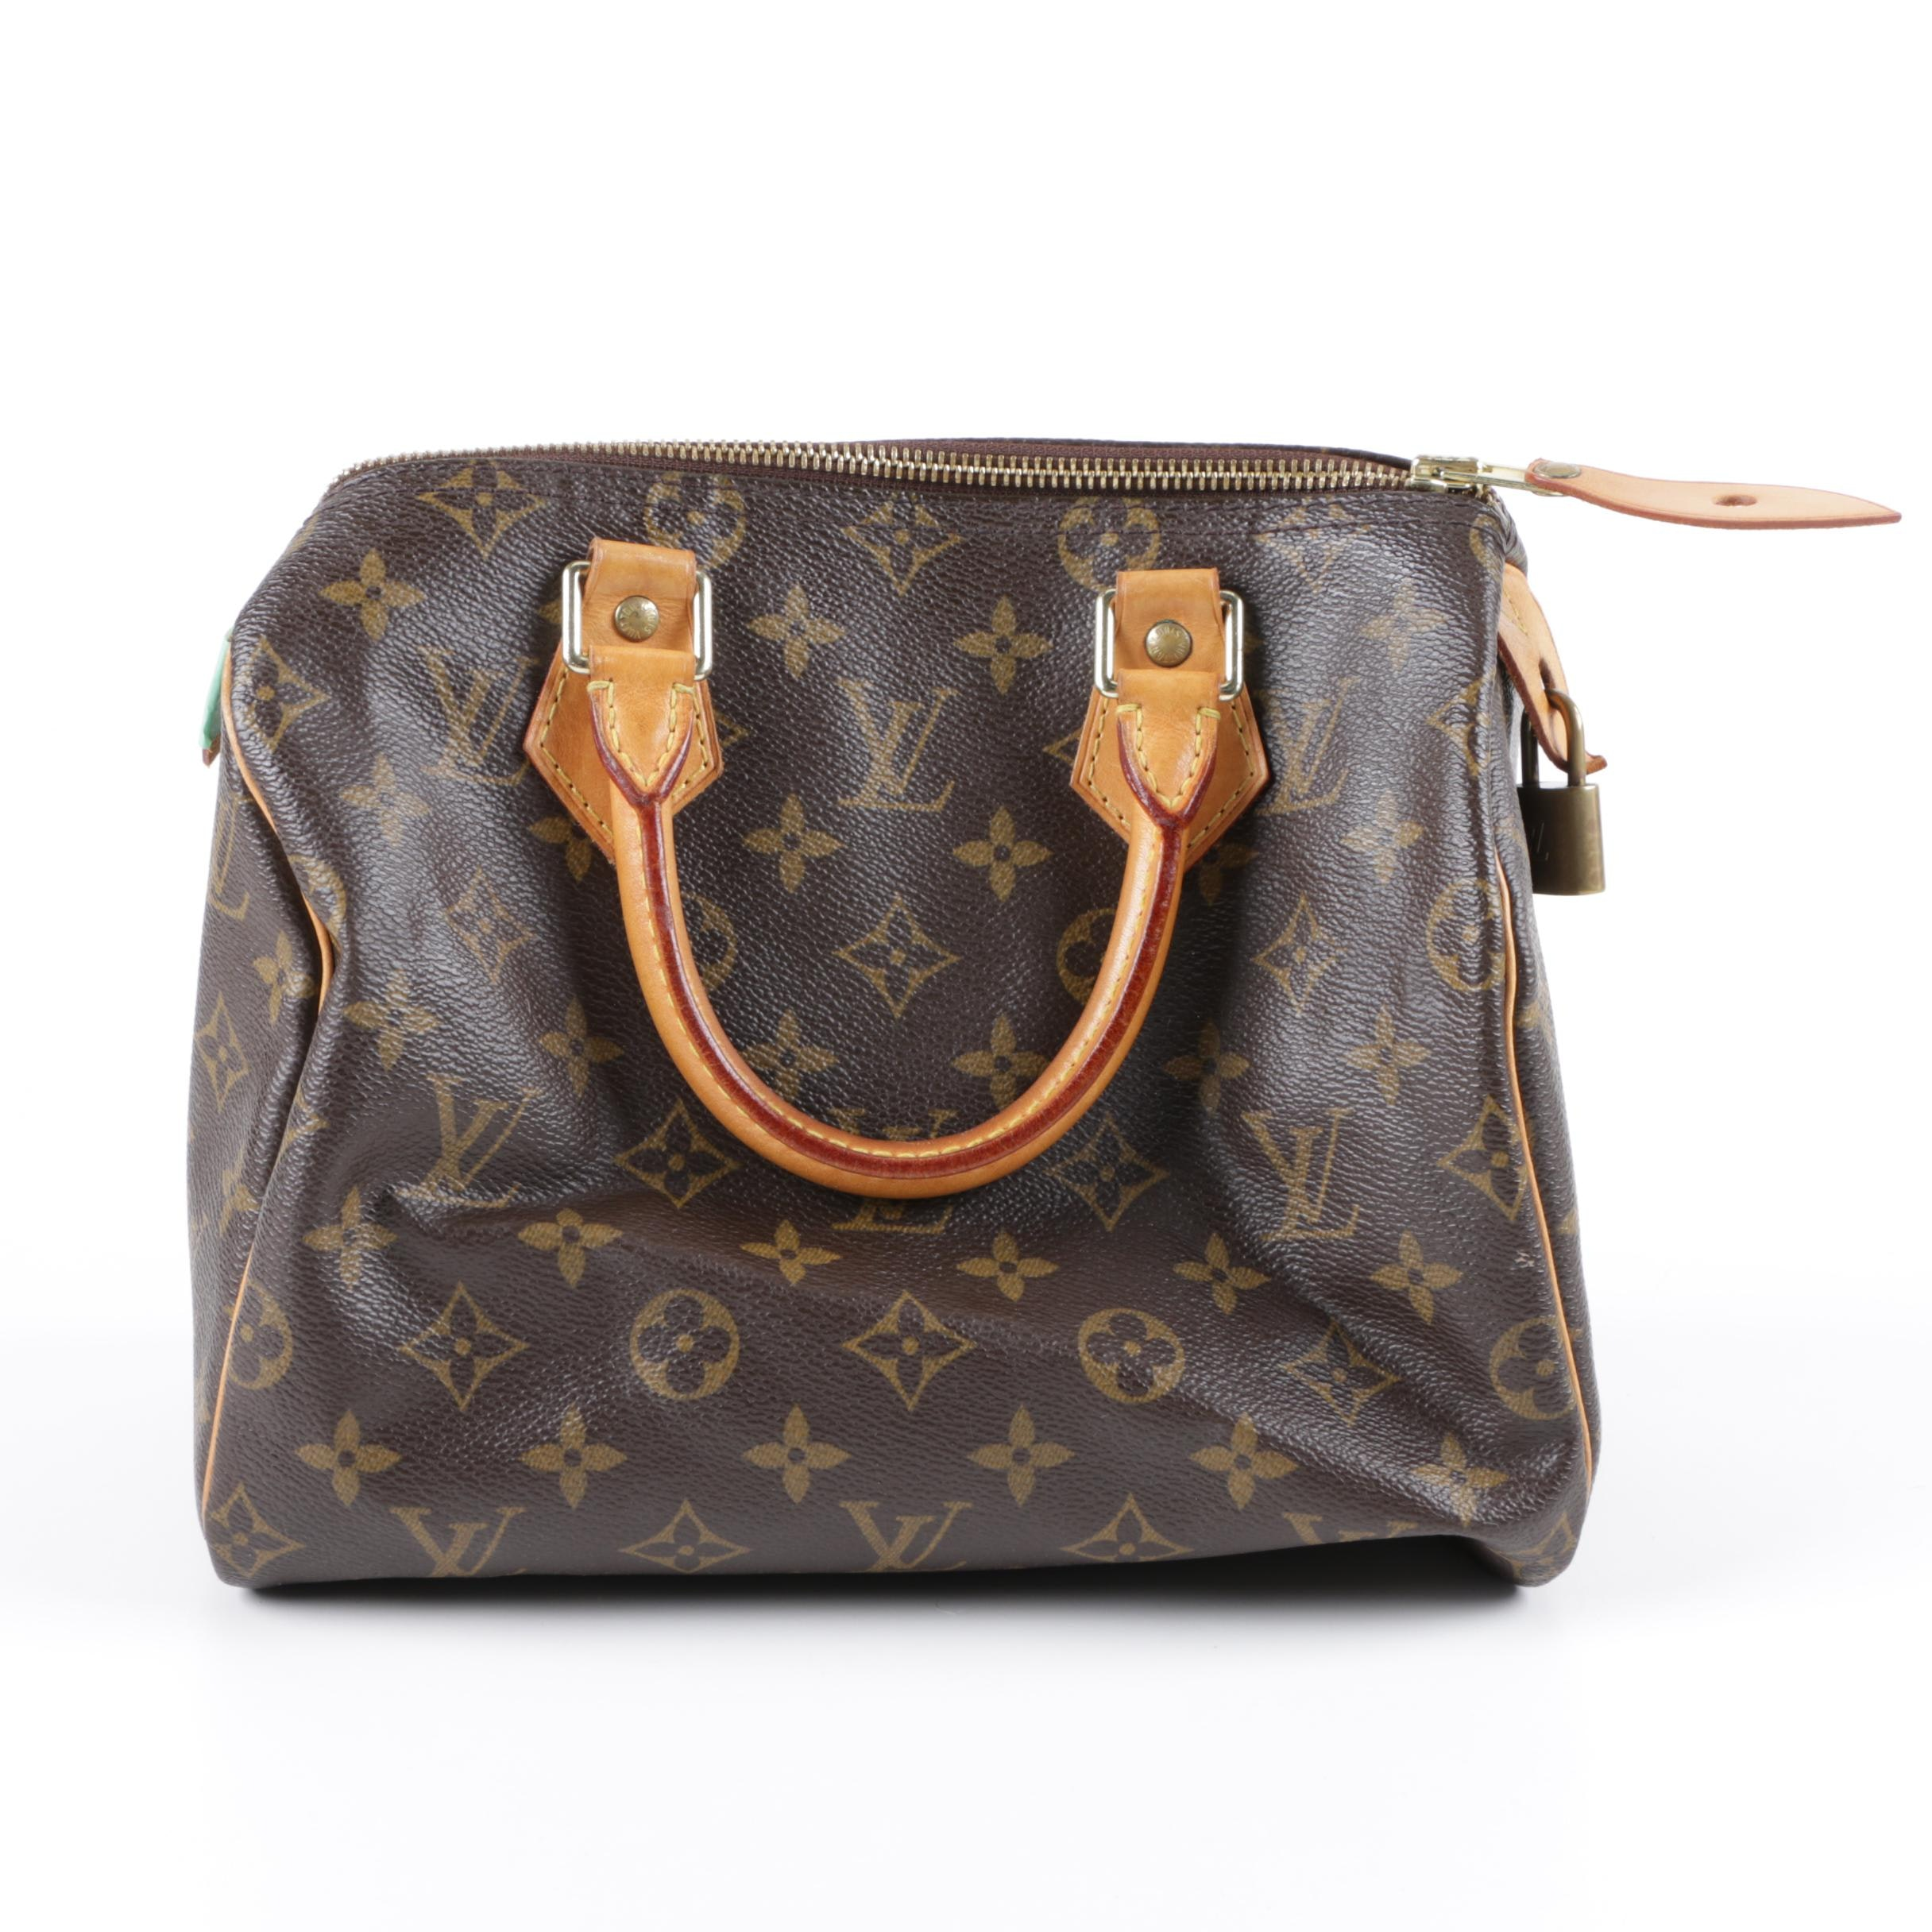 2004 Louis Vuitton Monogram Speedy Bag